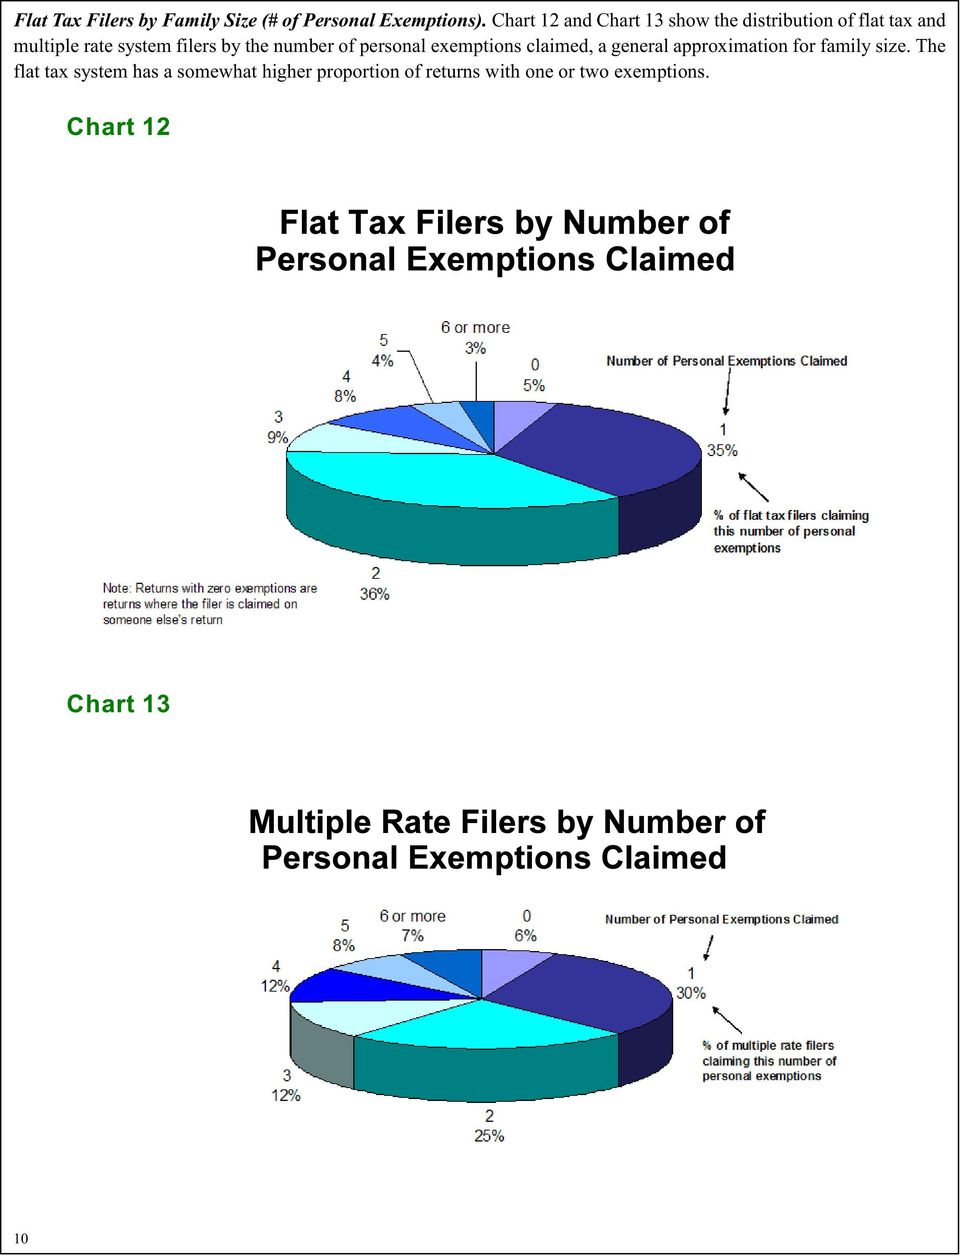 filers by the number of personal exemptions claimed, a general approximation for